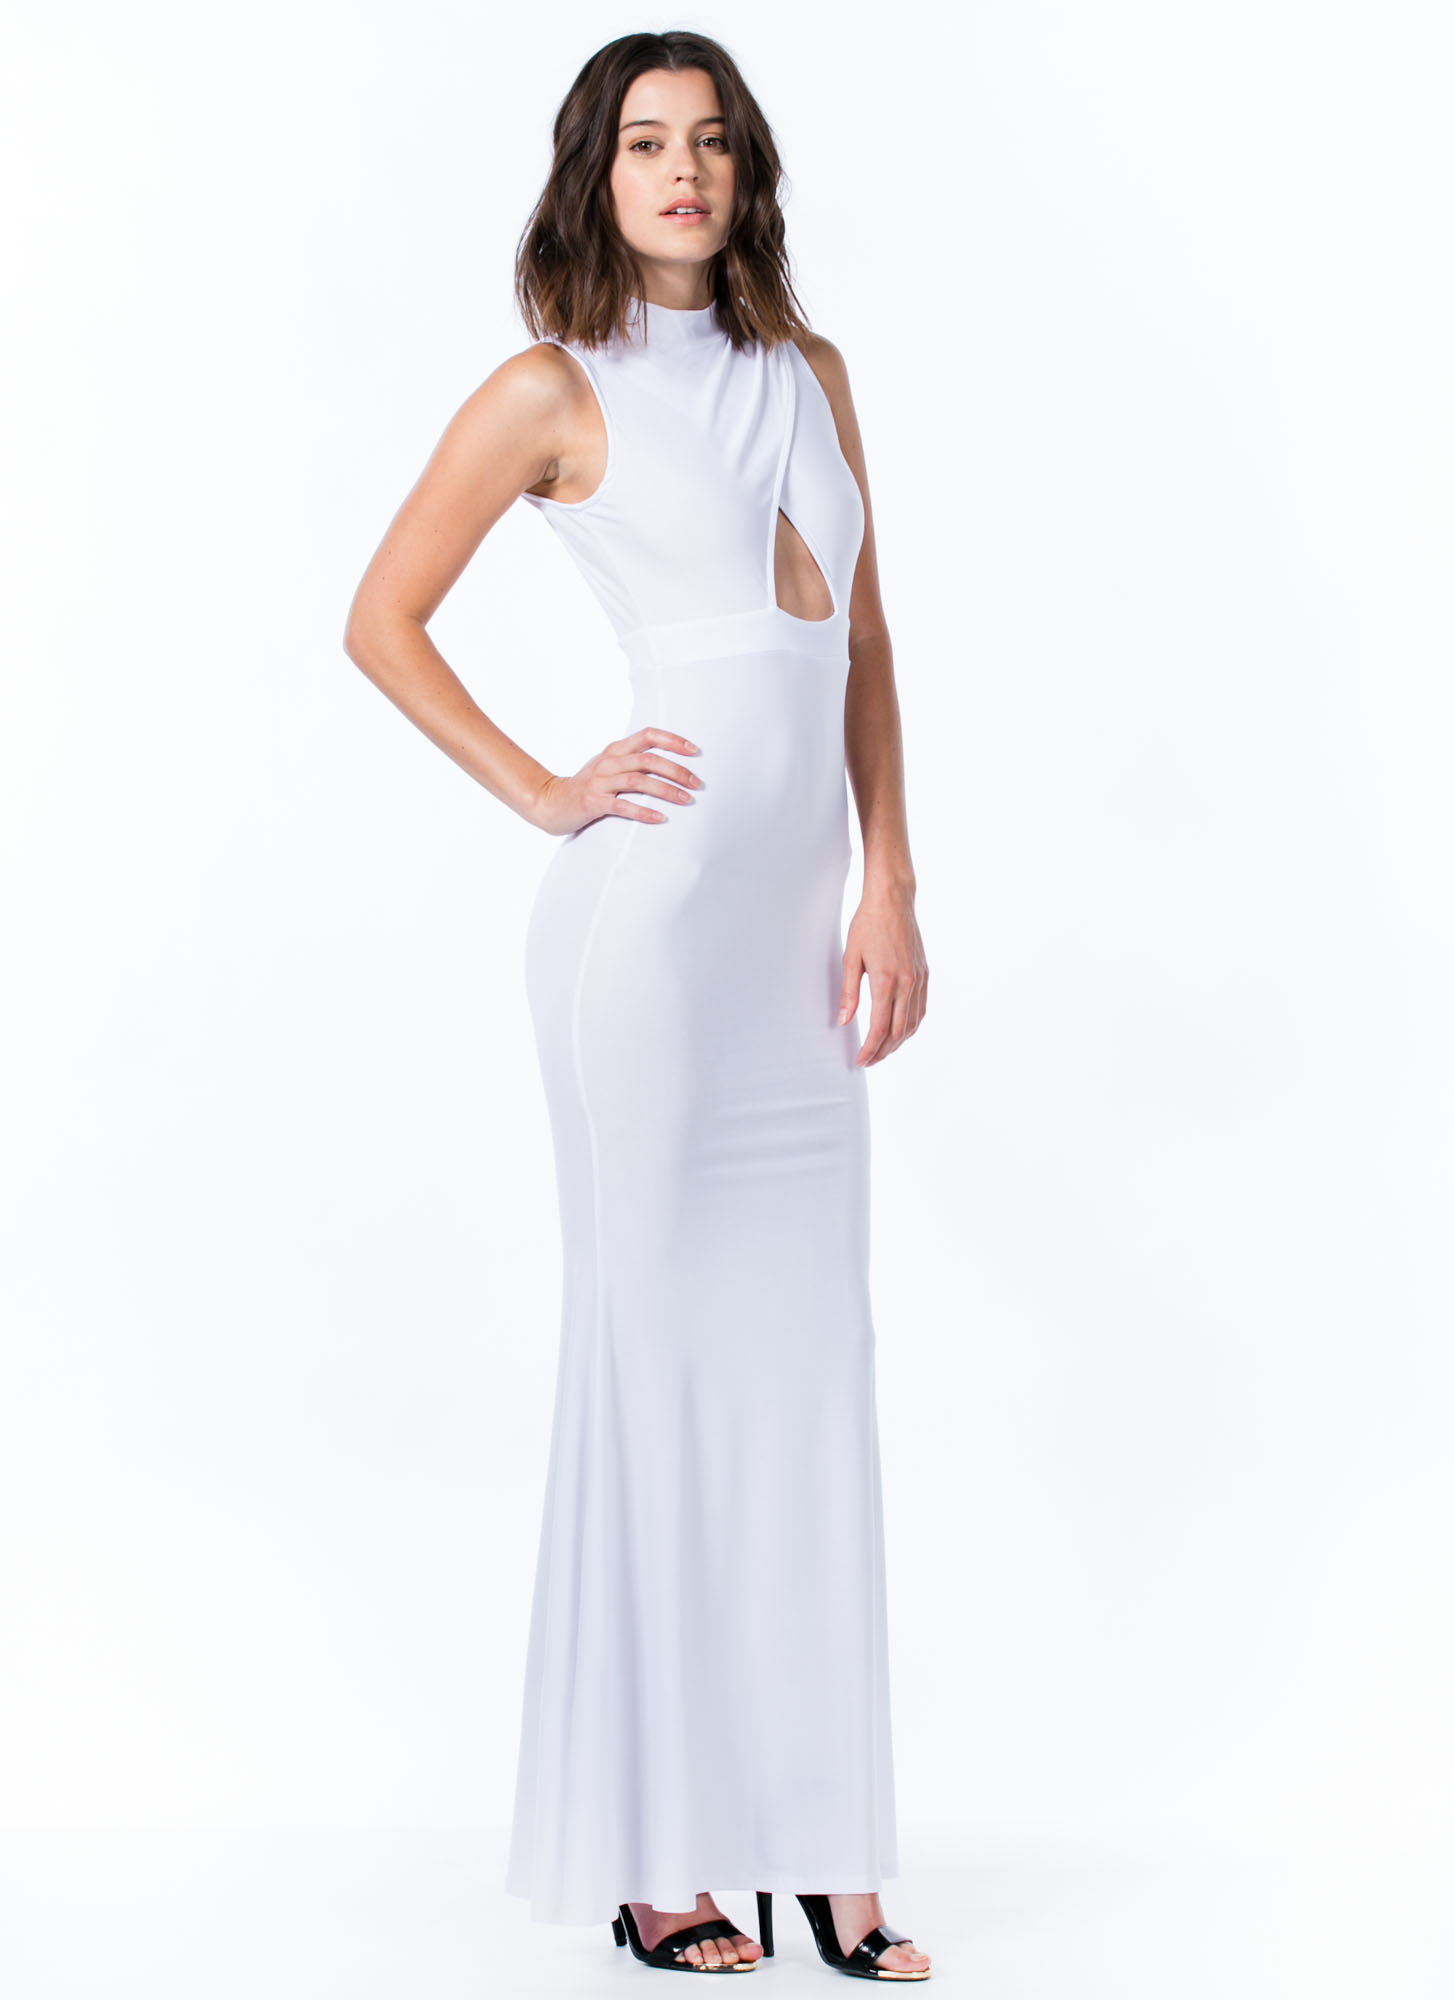 Mermaid To Order Cut-Out Maxi Dress WHITE (Final Sale)